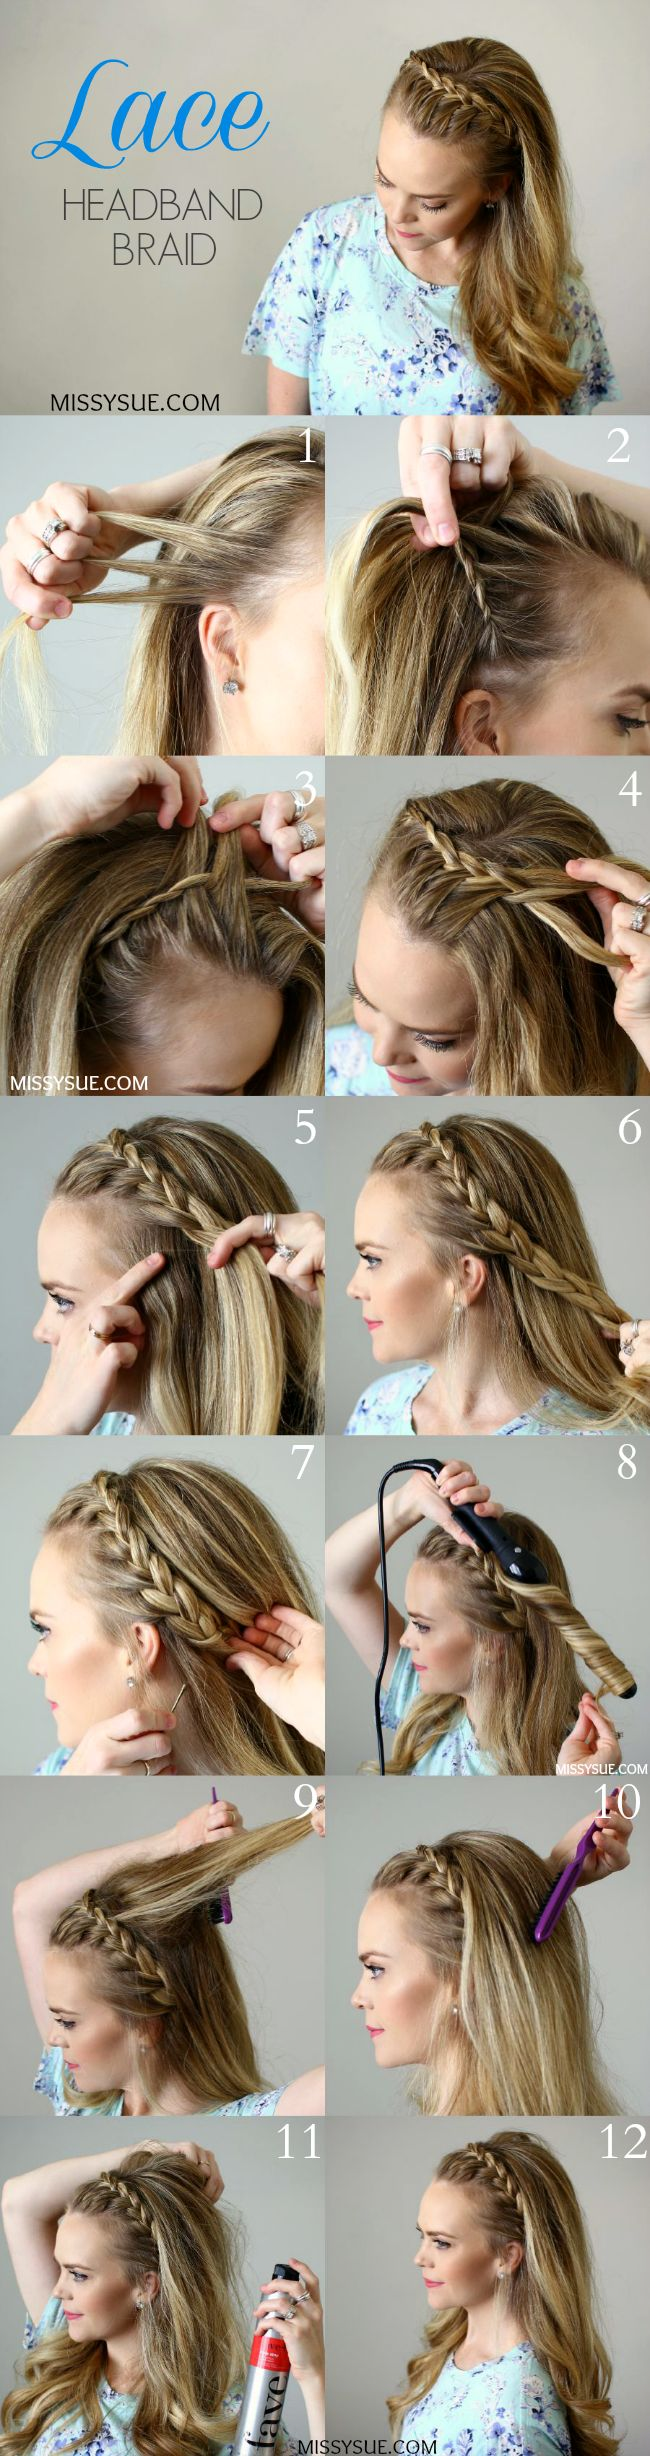 Mermaid Hairstyles to Pair Your Looks 2016 | Fashion Qe